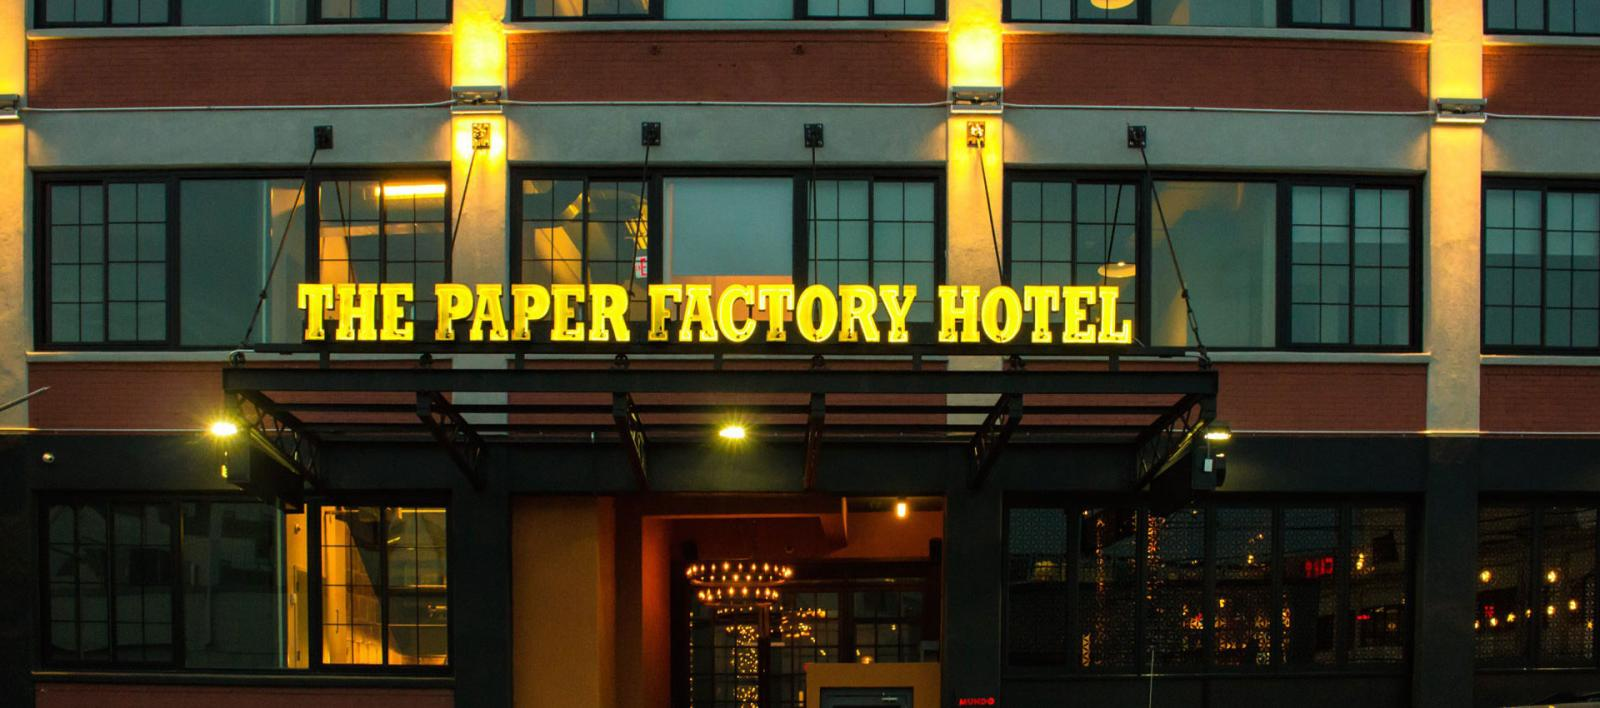 The Paper Factory Hotel in Long Island City